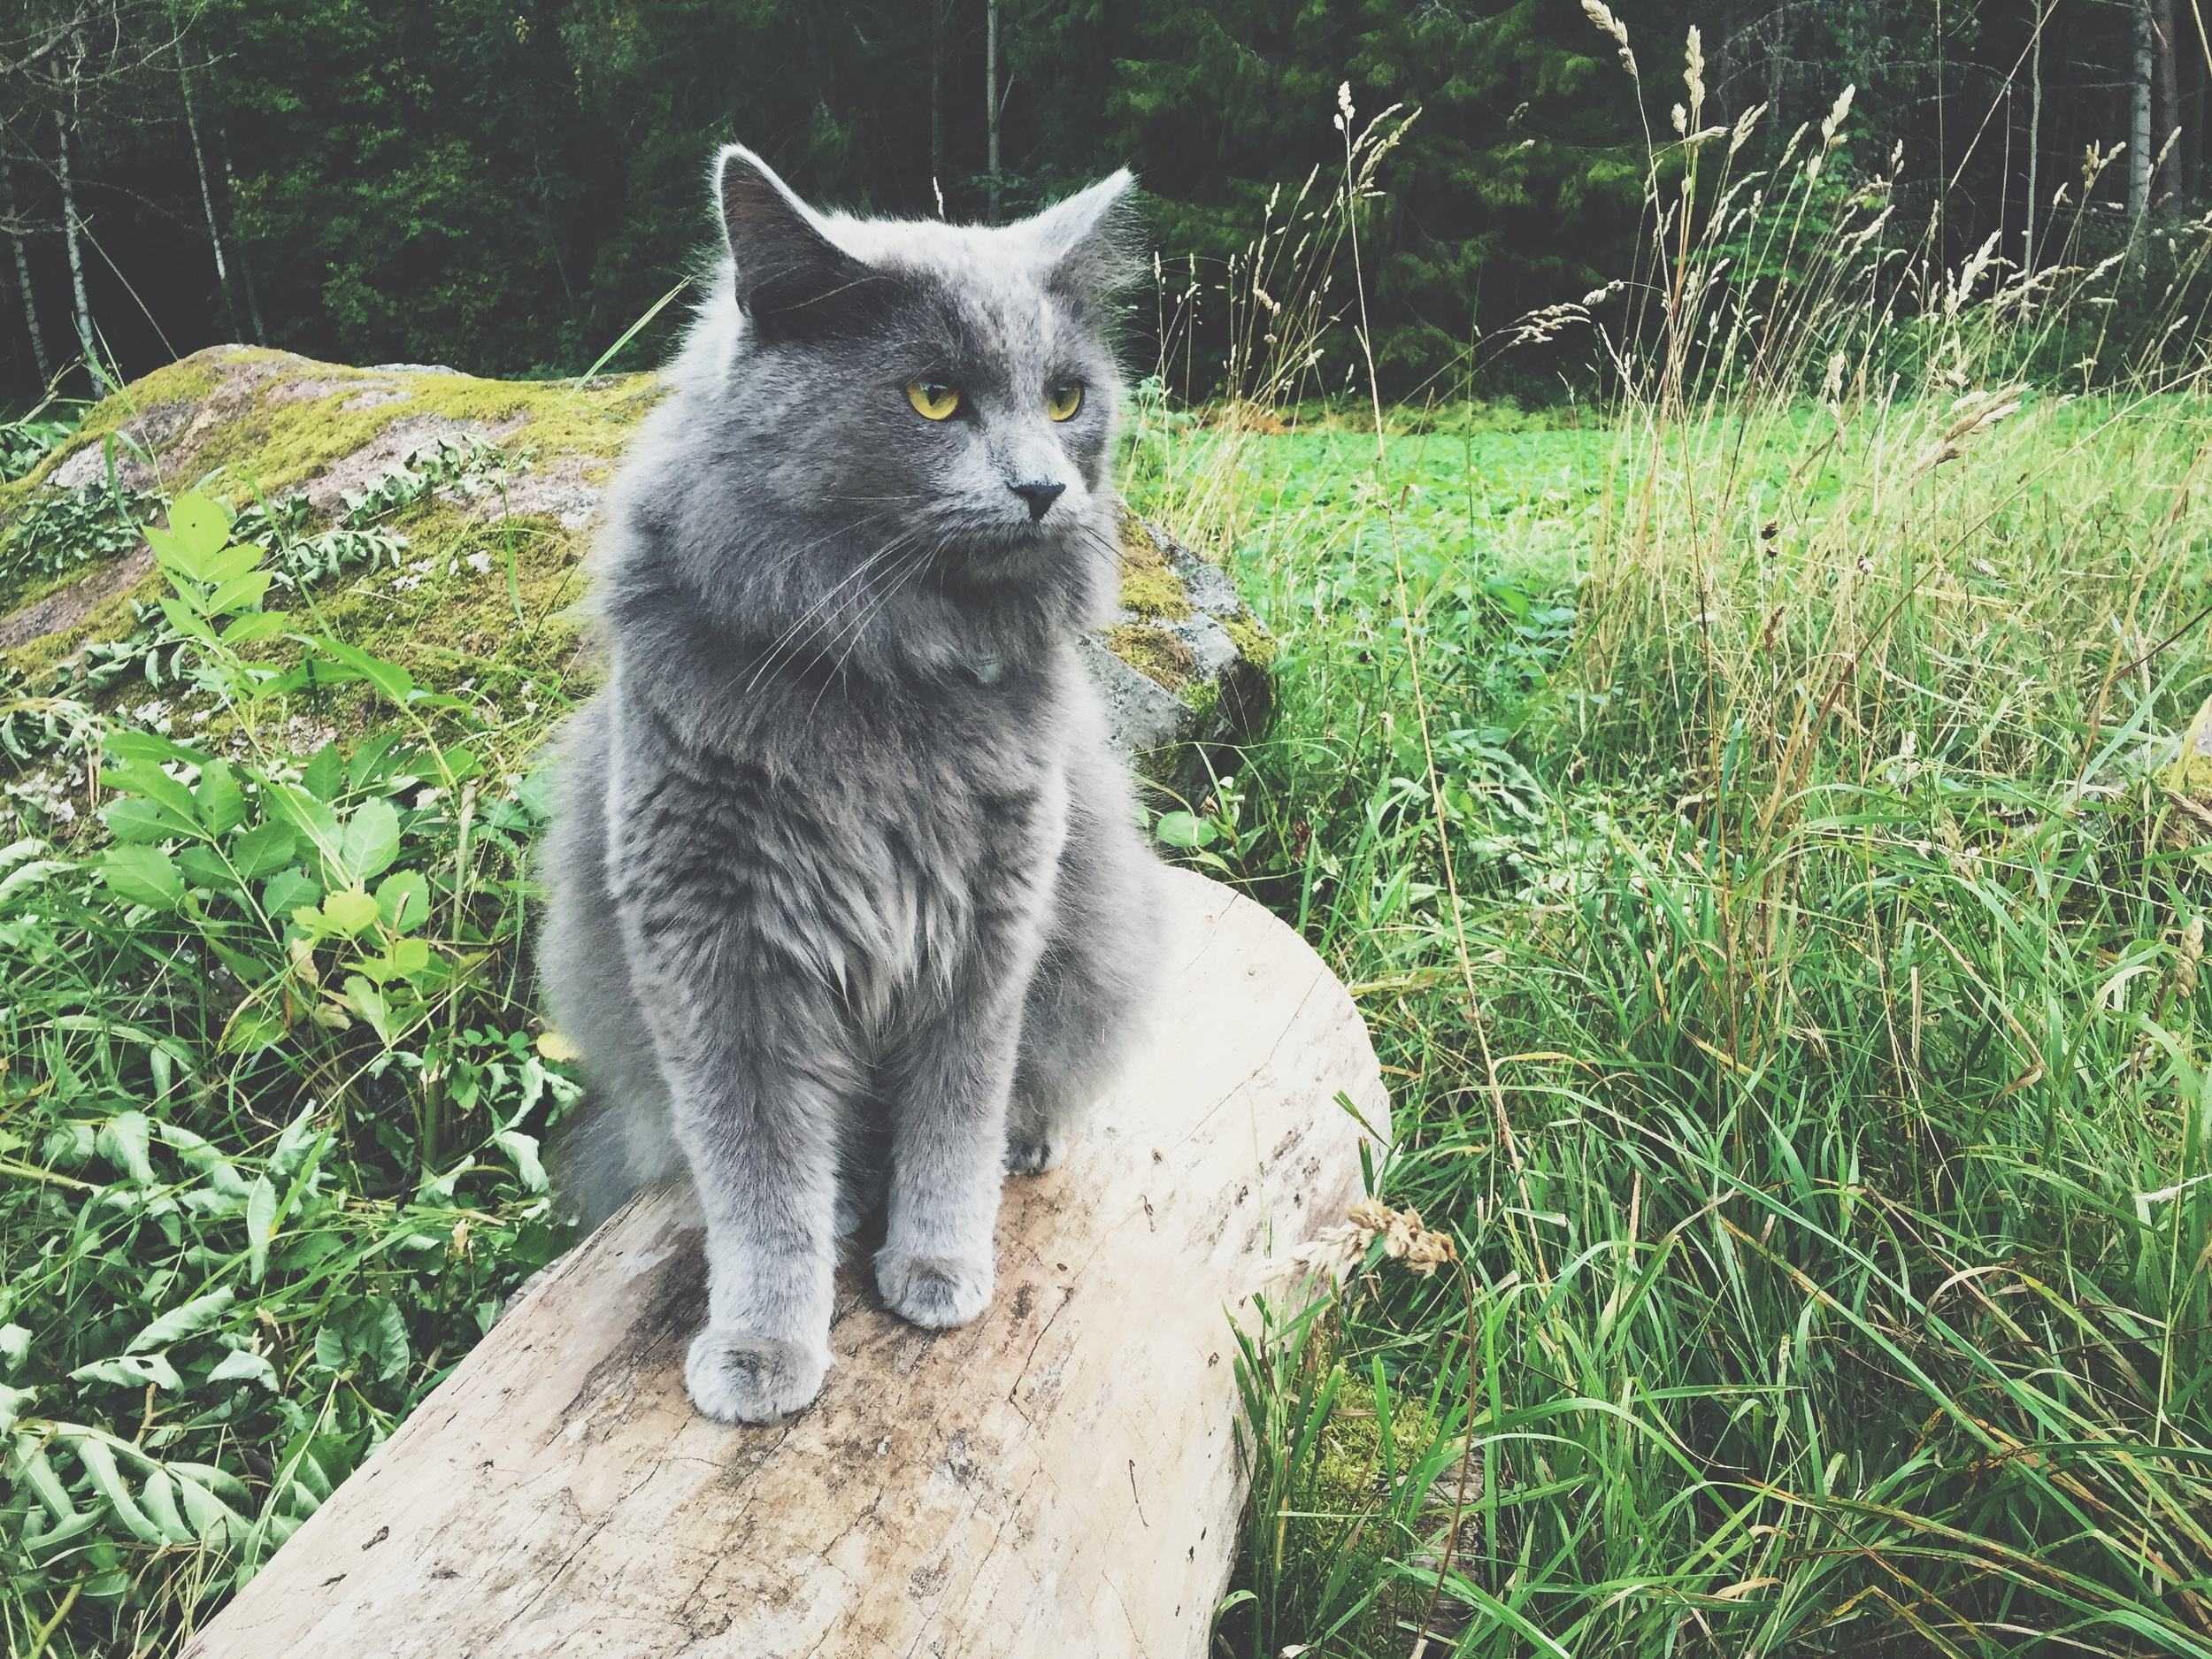 A fluffy cat I found in the forest across the street from Lilla Sunnersta.